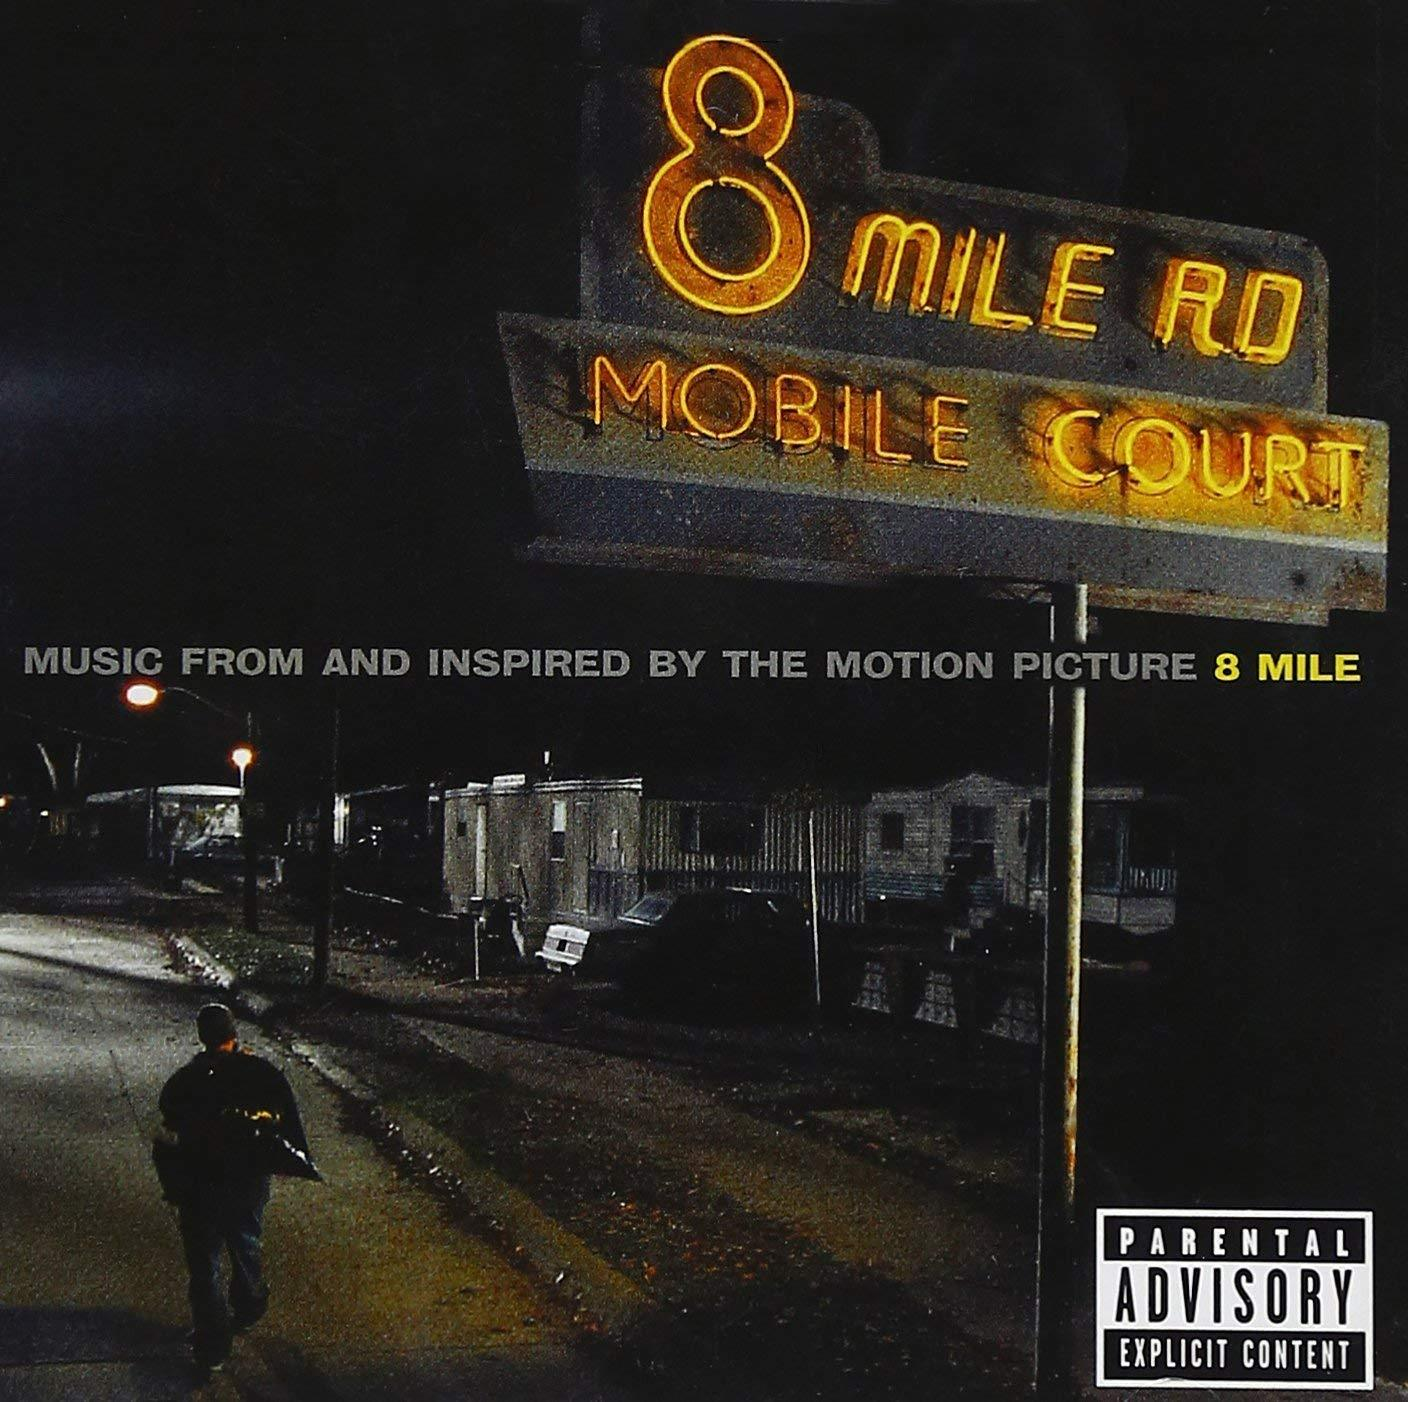 Eminem - 8 Mile [Explicit] Audio CD 2002, Music Inspired by the movie soundtrack